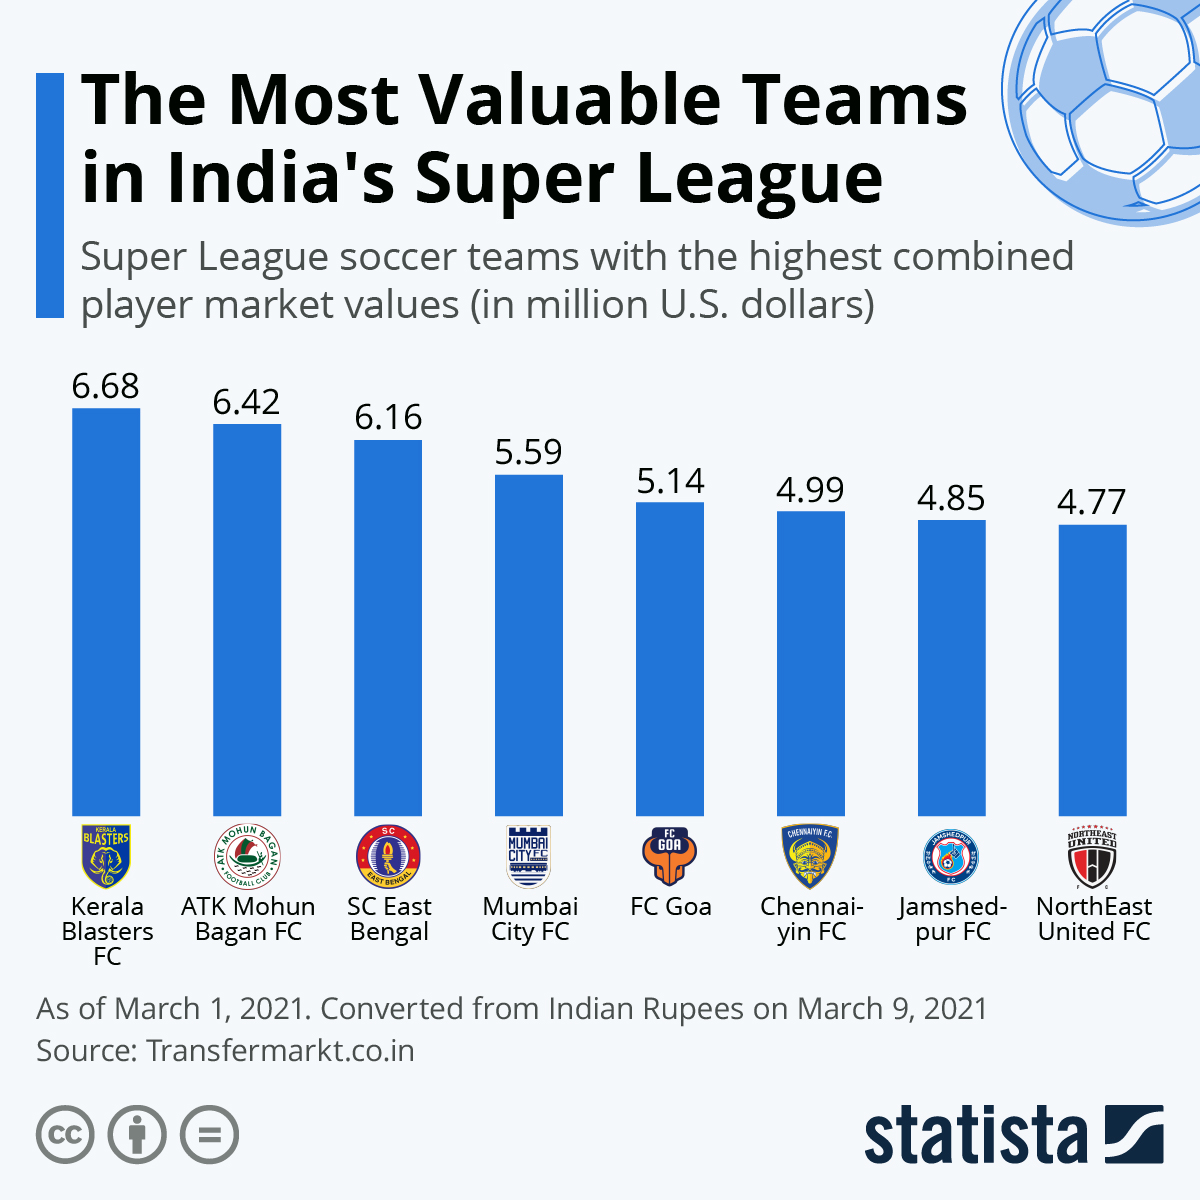 The Most Valuable Teams in Indias Super League